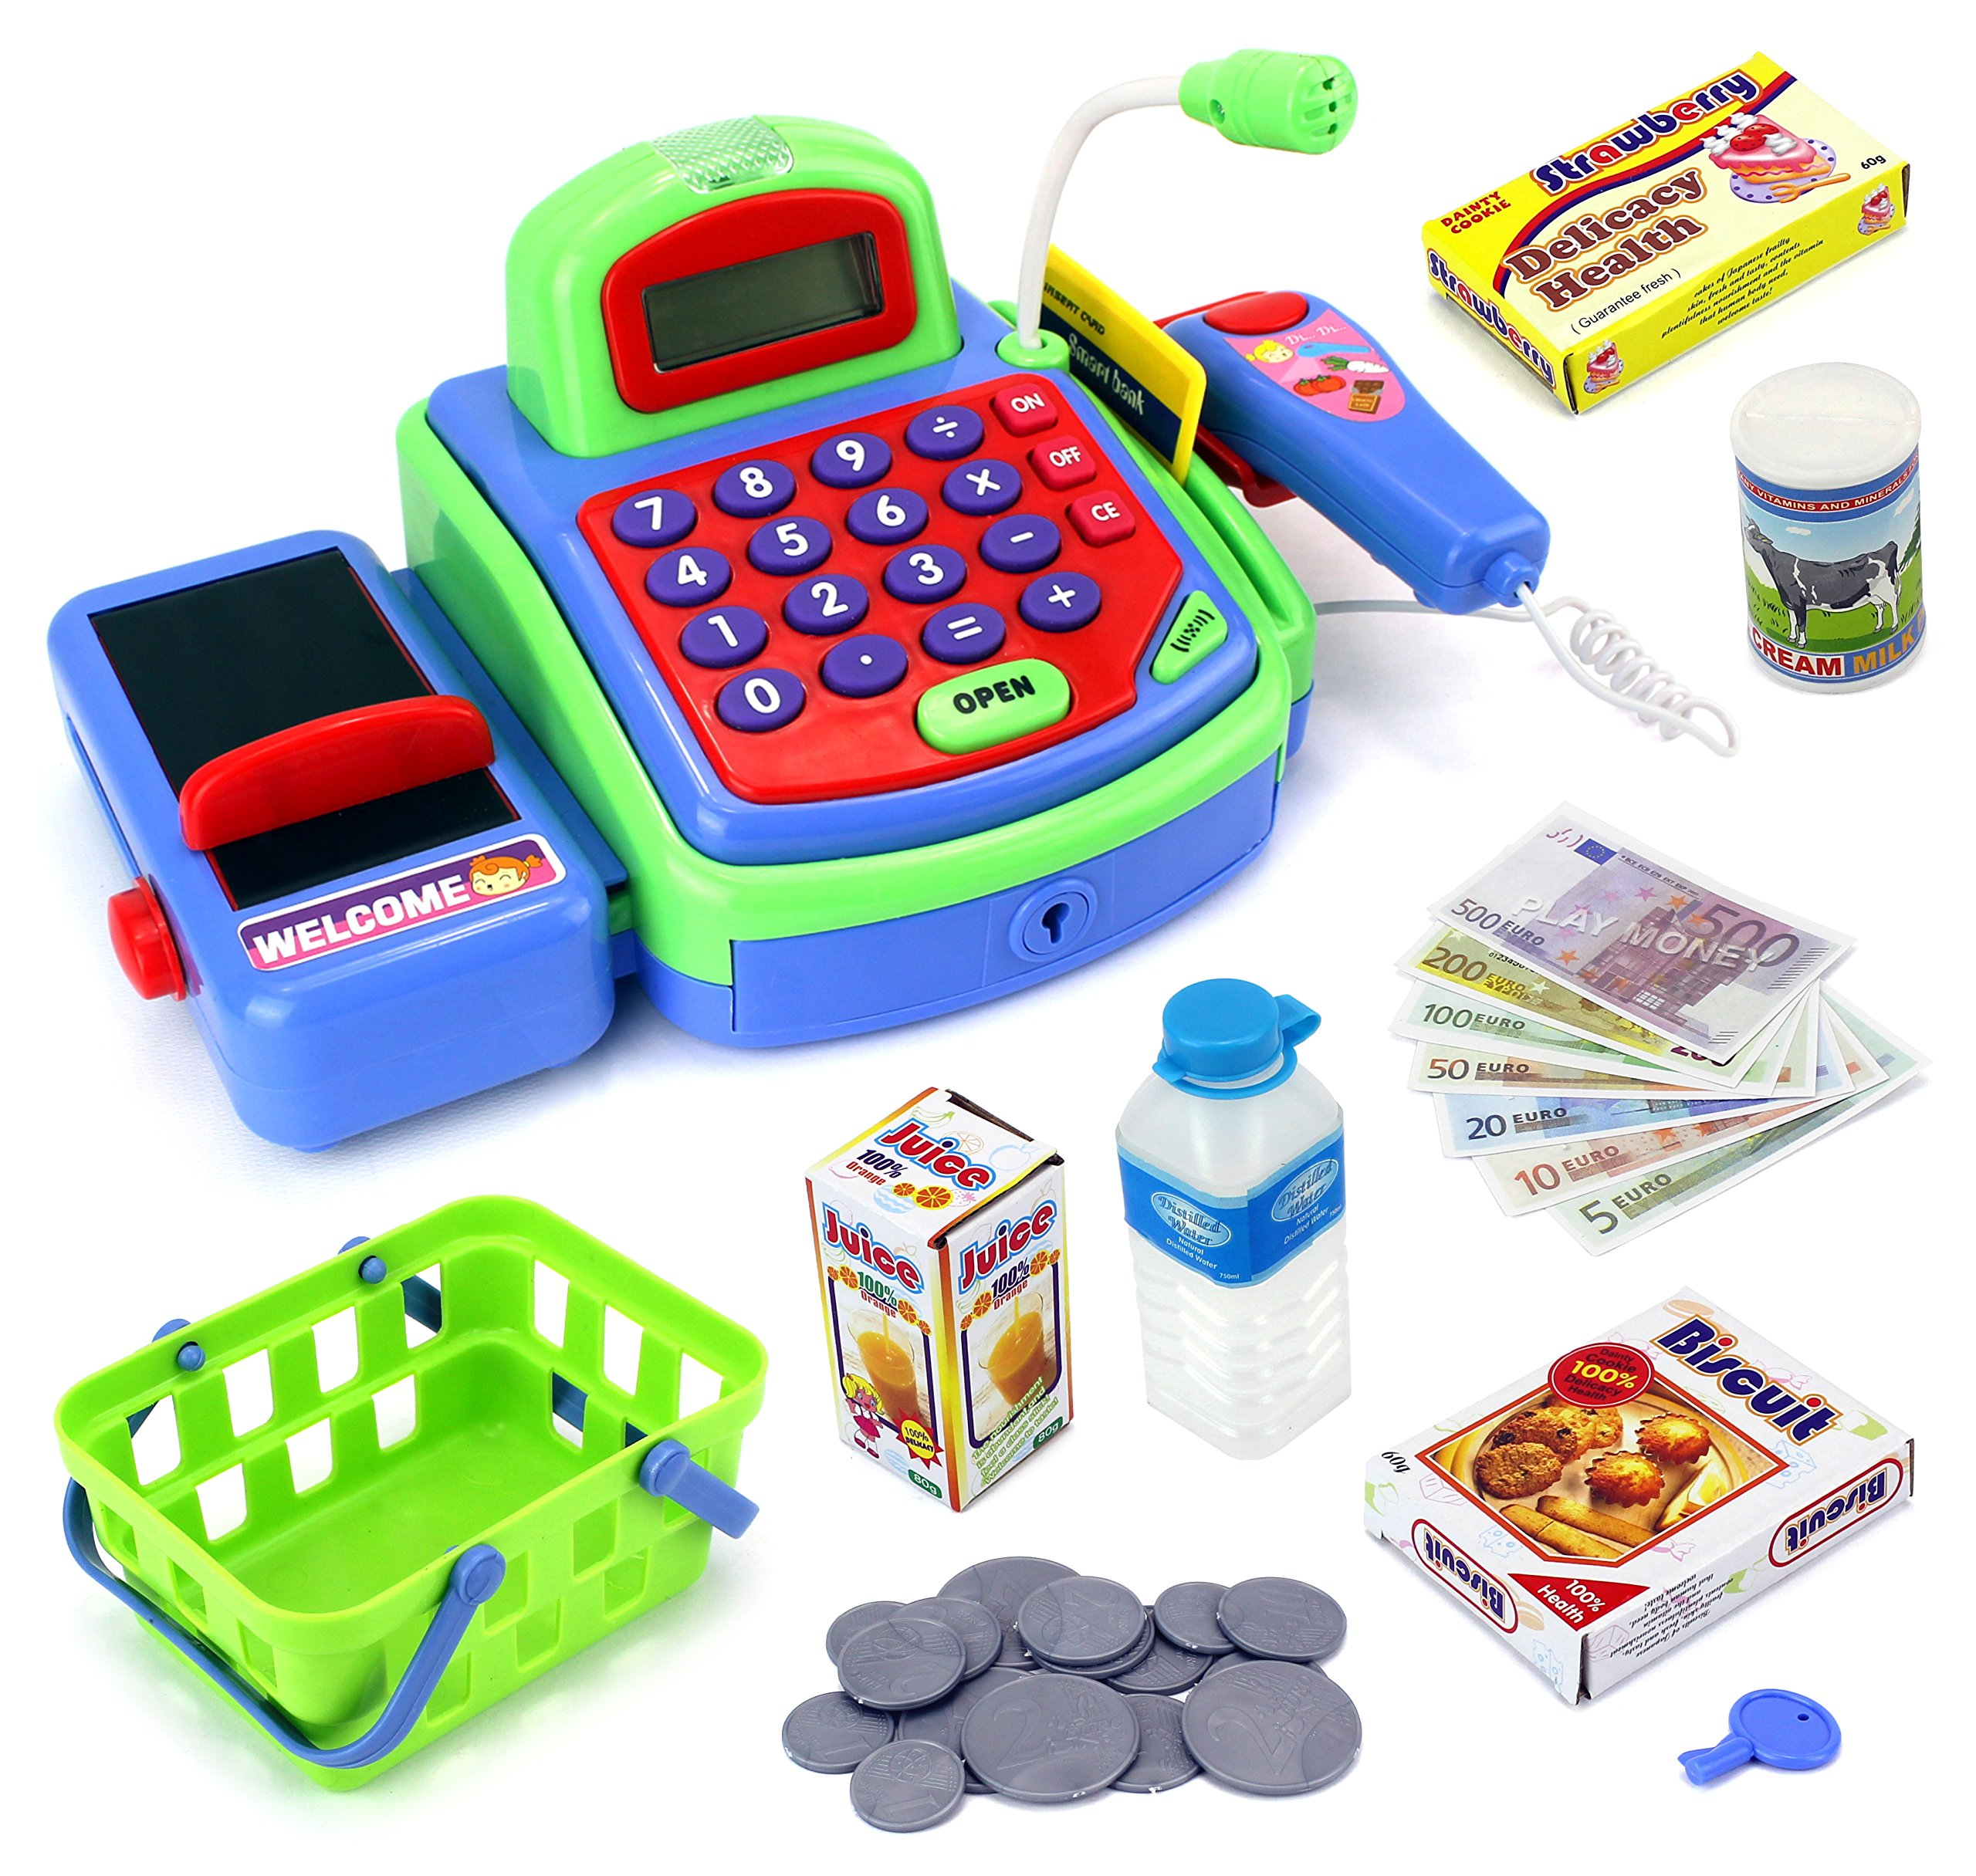 Velocity Toys Toy Cash Register Imagine Multi-functional Educational Pretend Play Battery Operated Toy Cash Register w/Working Calculator and Microphone,Scanner,Money and Credit Card,Groceries(Green) by Velocity Toys